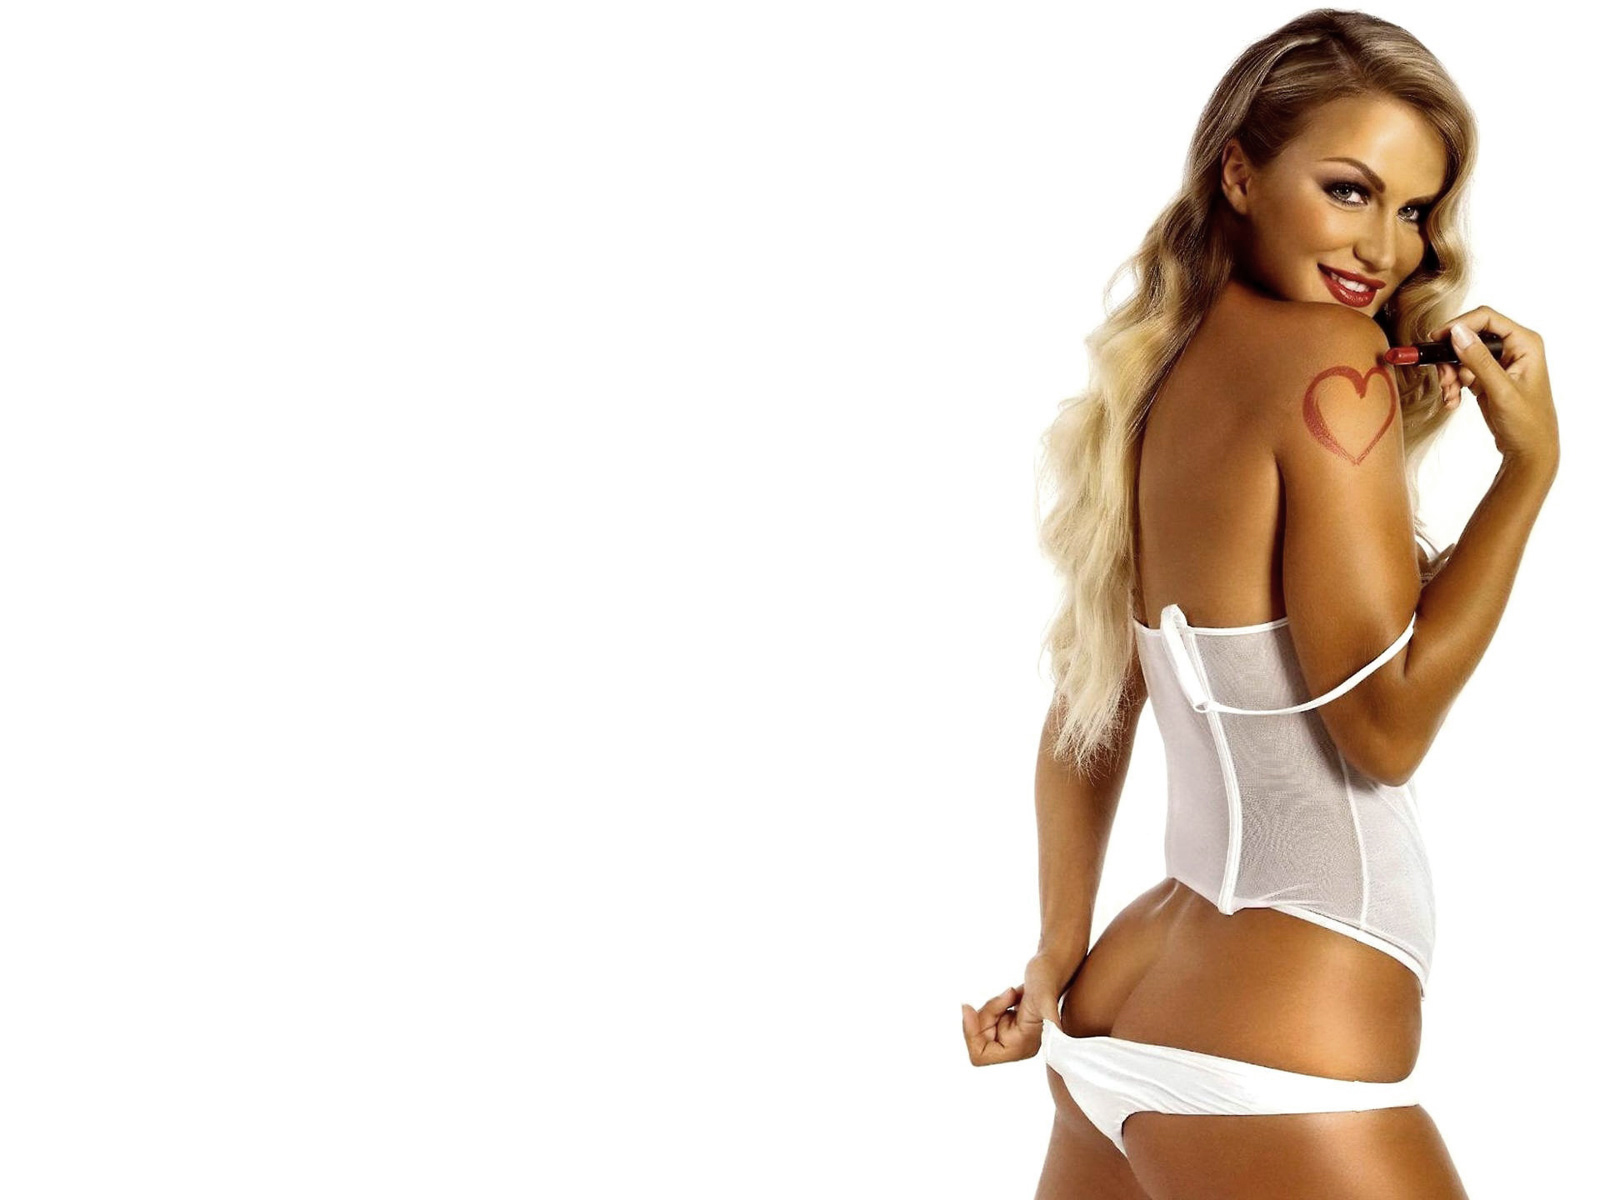 http://3.bp.blogspot.com/-sBPl8O7FJ1M/TYwUM0S9fmI/AAAAAAAAACo/woVOWyb6Lkk/s1600/12-best-top-desktop-super-celebrity-girl-eva-henger-super-lingerie-wallpapers-hd.jpeg